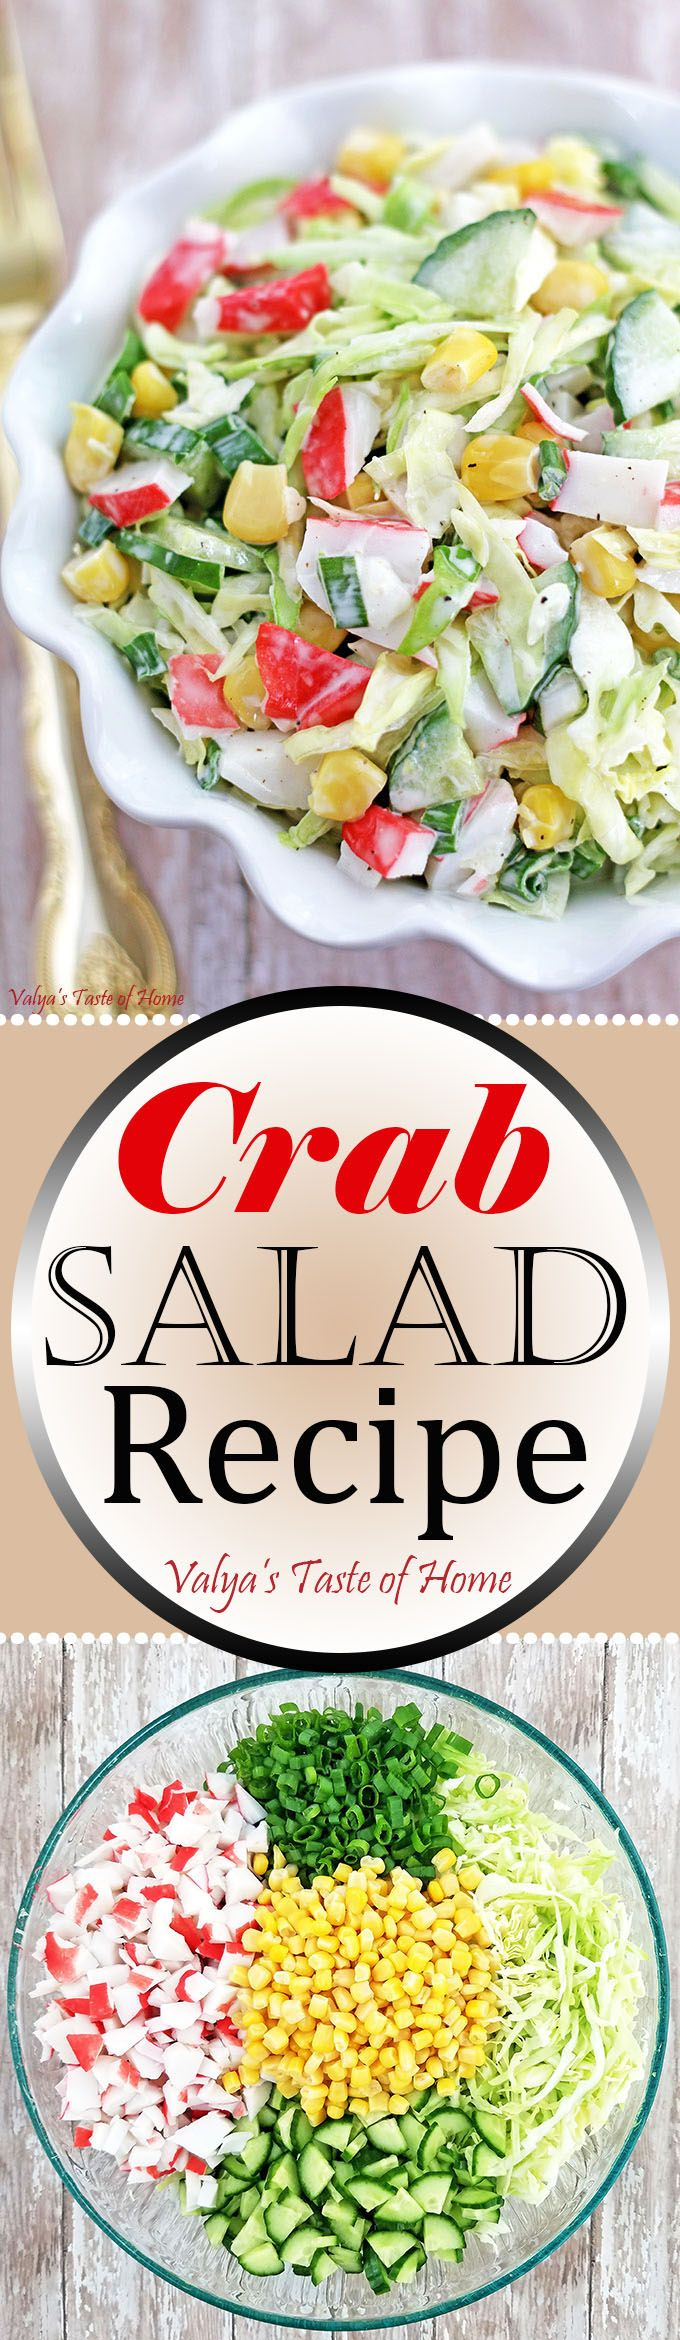 Crunchy, so flavorful, and loaded with crab meat! The salad is perfect for any occasion or just for a simple family dinner. I usually serve it with mashed potatoes, as kids like it. Other delicious ways to eat it is with pasta, or between two slices of bread for an incredible sandwich. As well as in a lettuce or tortilla wrap. This huge bowl of salad is usually gone within minutes every time I make it.